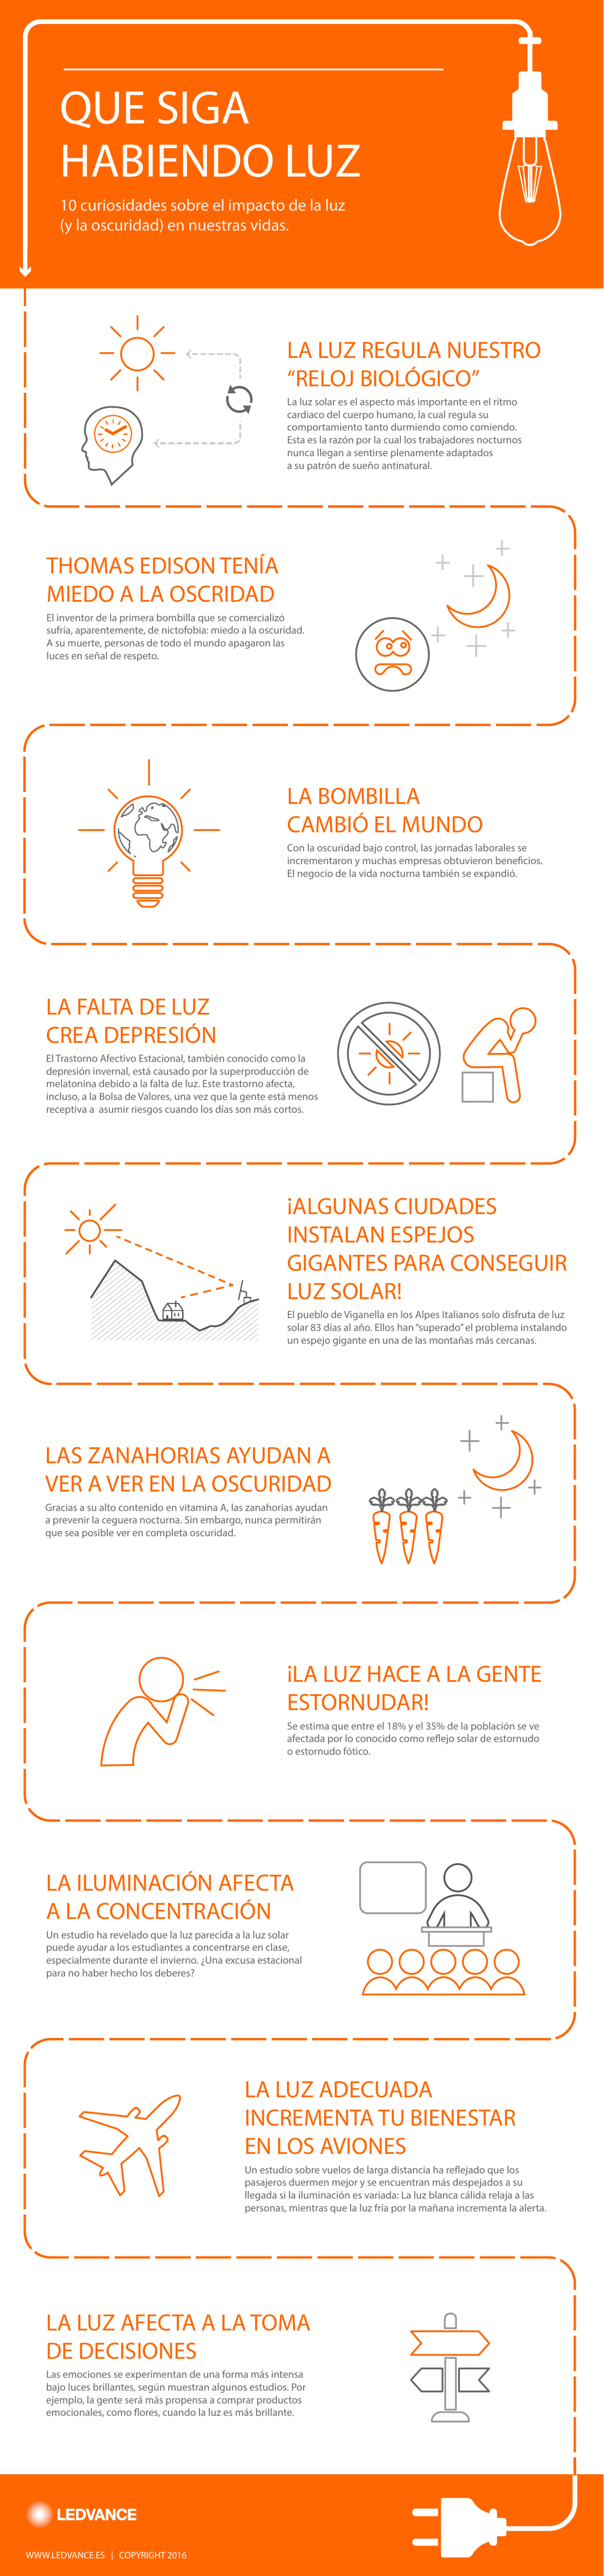 Infographic: let there be light!